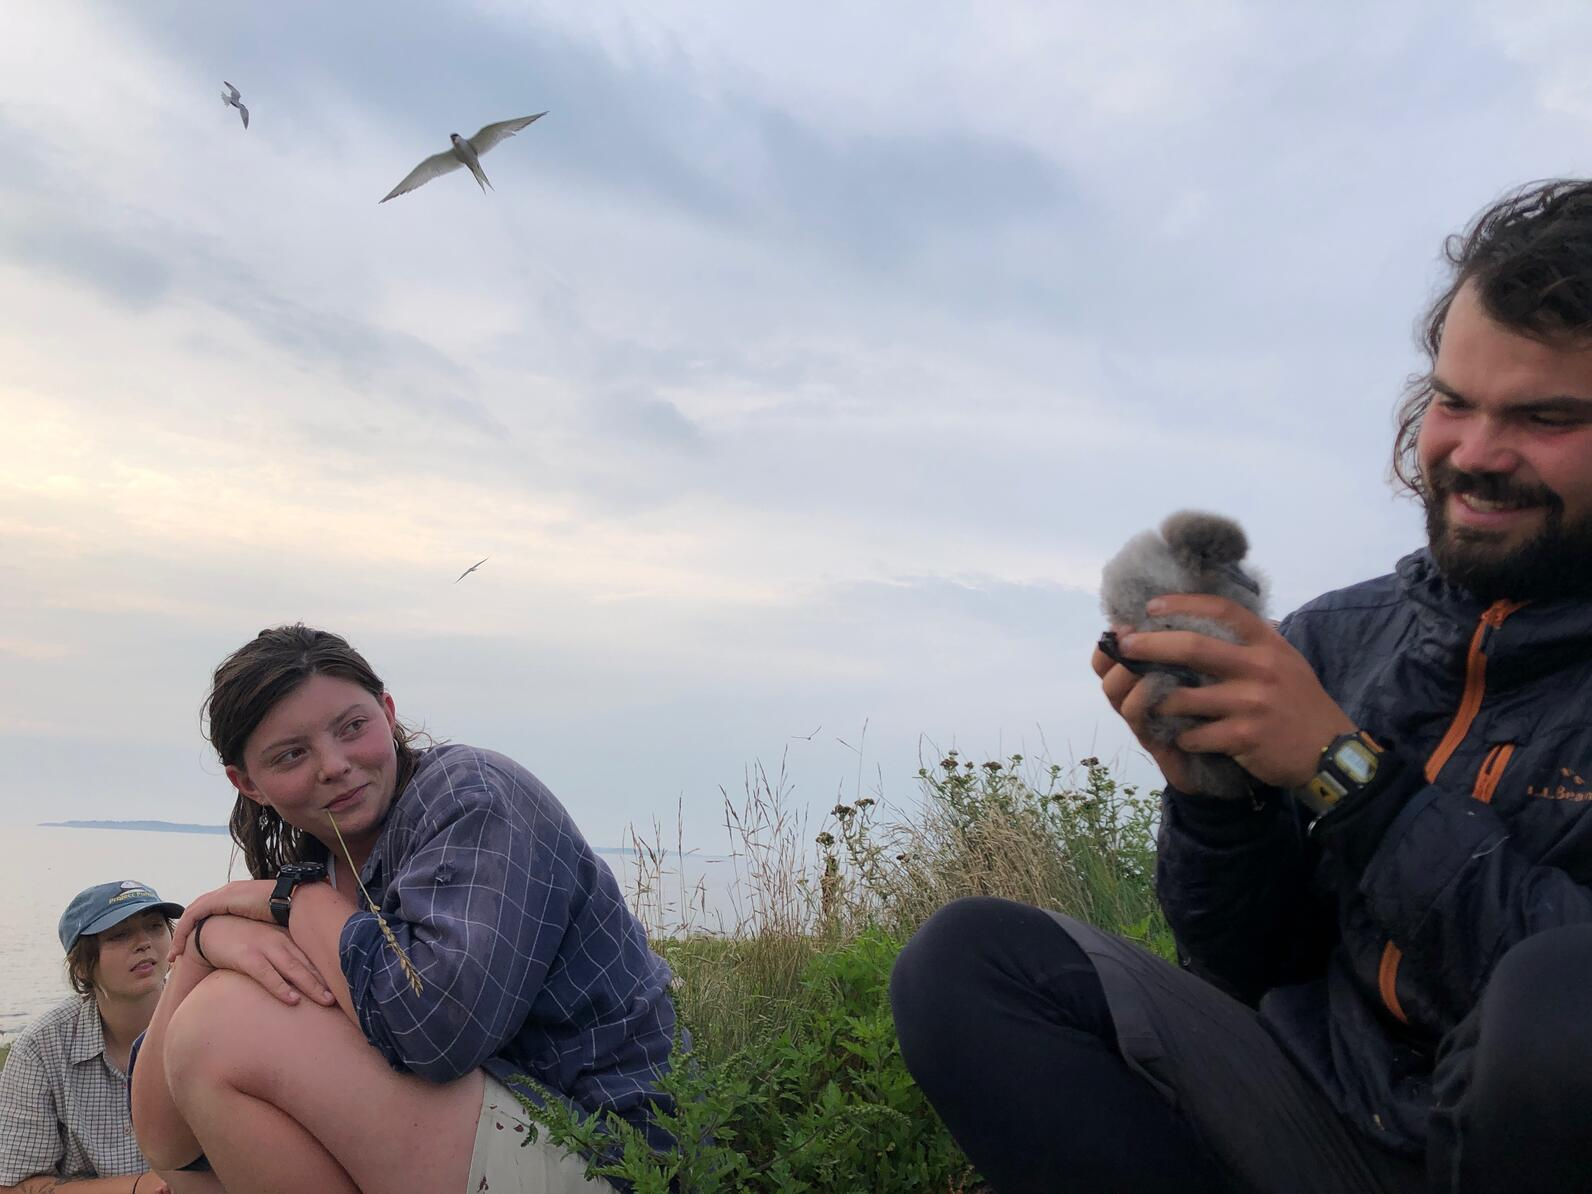 Matinicus Rock researchers with Manx Shearwater chick